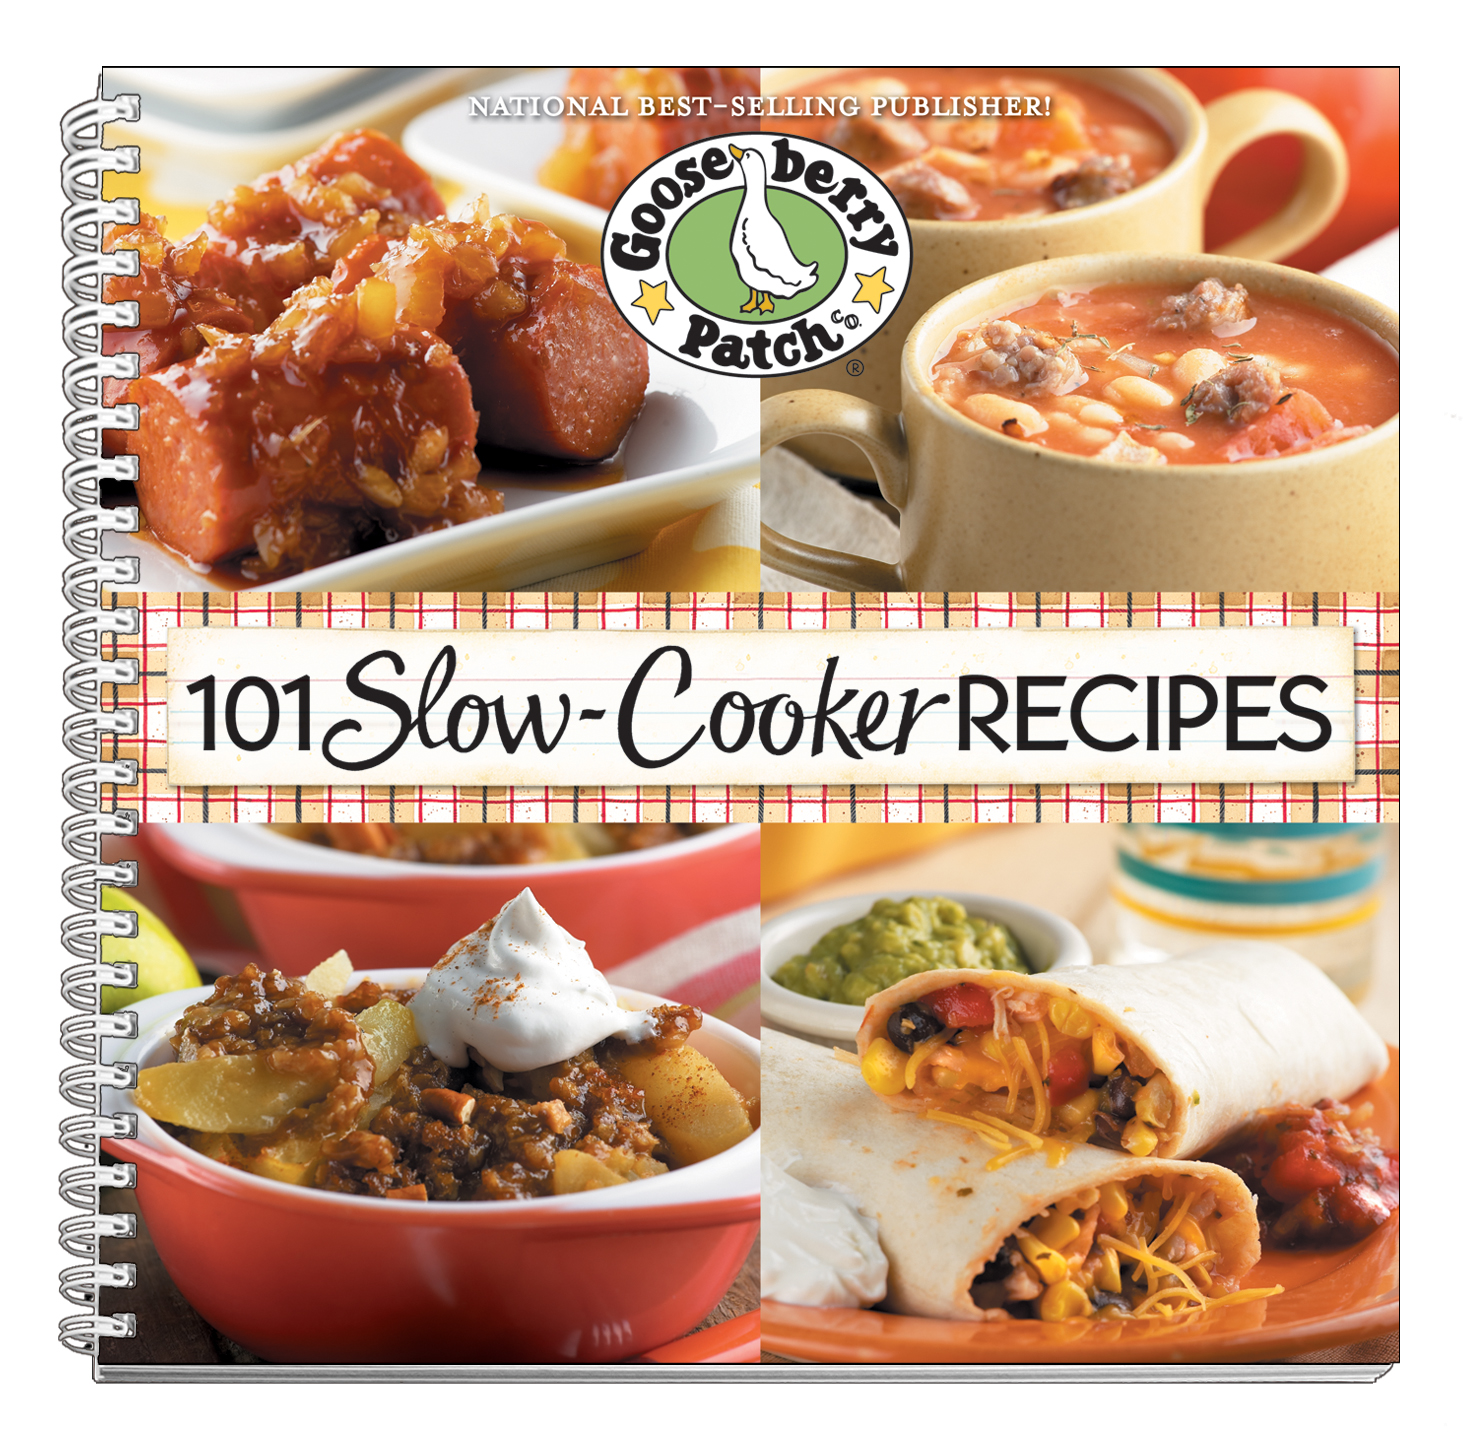 101 Slow-Cooker Recipes cookbook from Gooseberry Patch